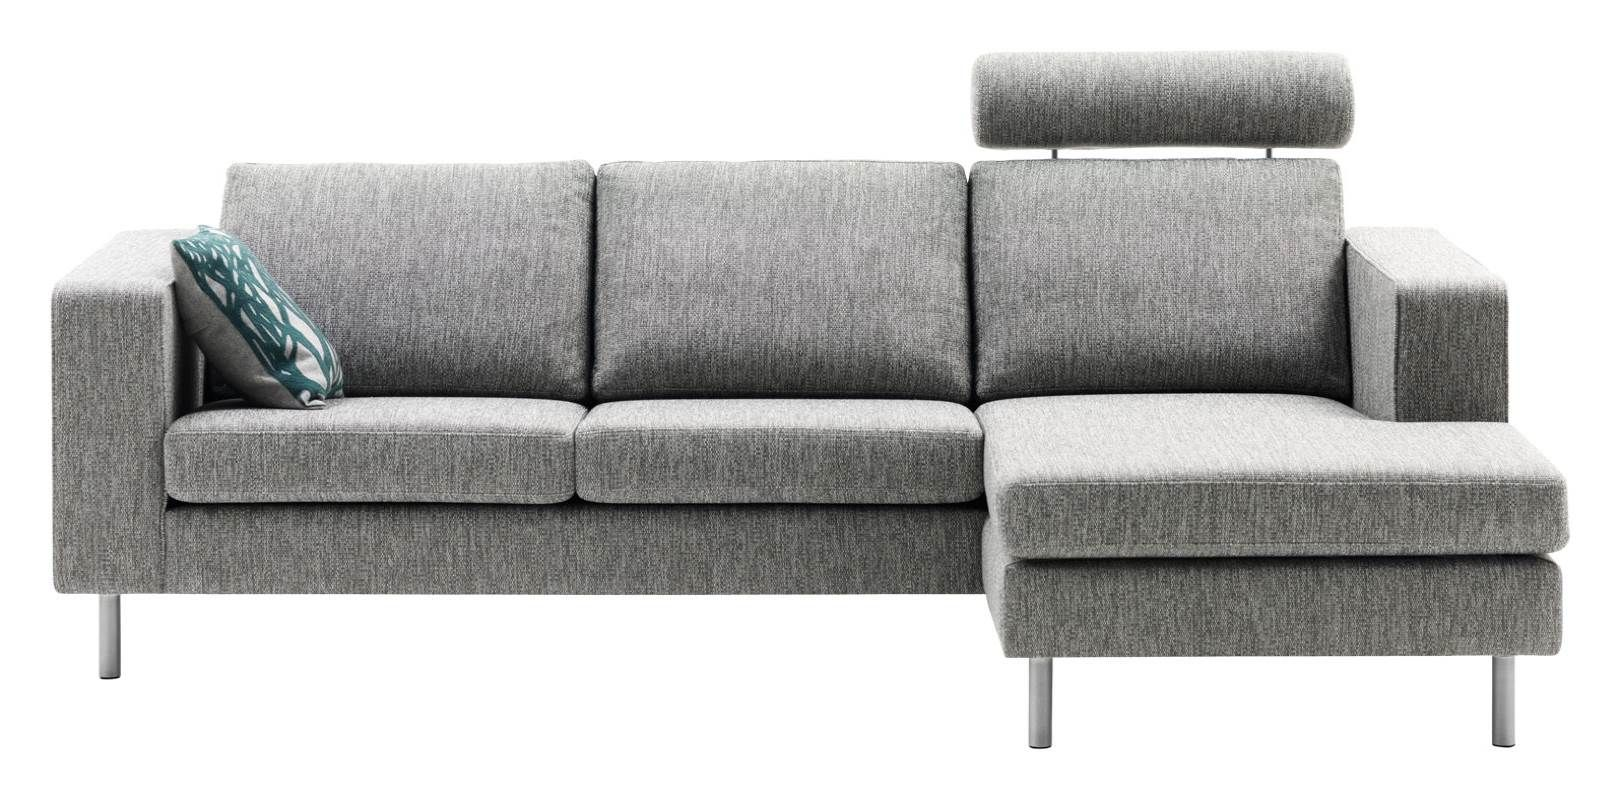 Boconcept Sleeper Sofa Review Deluxe Bed Quality Baci Living Room